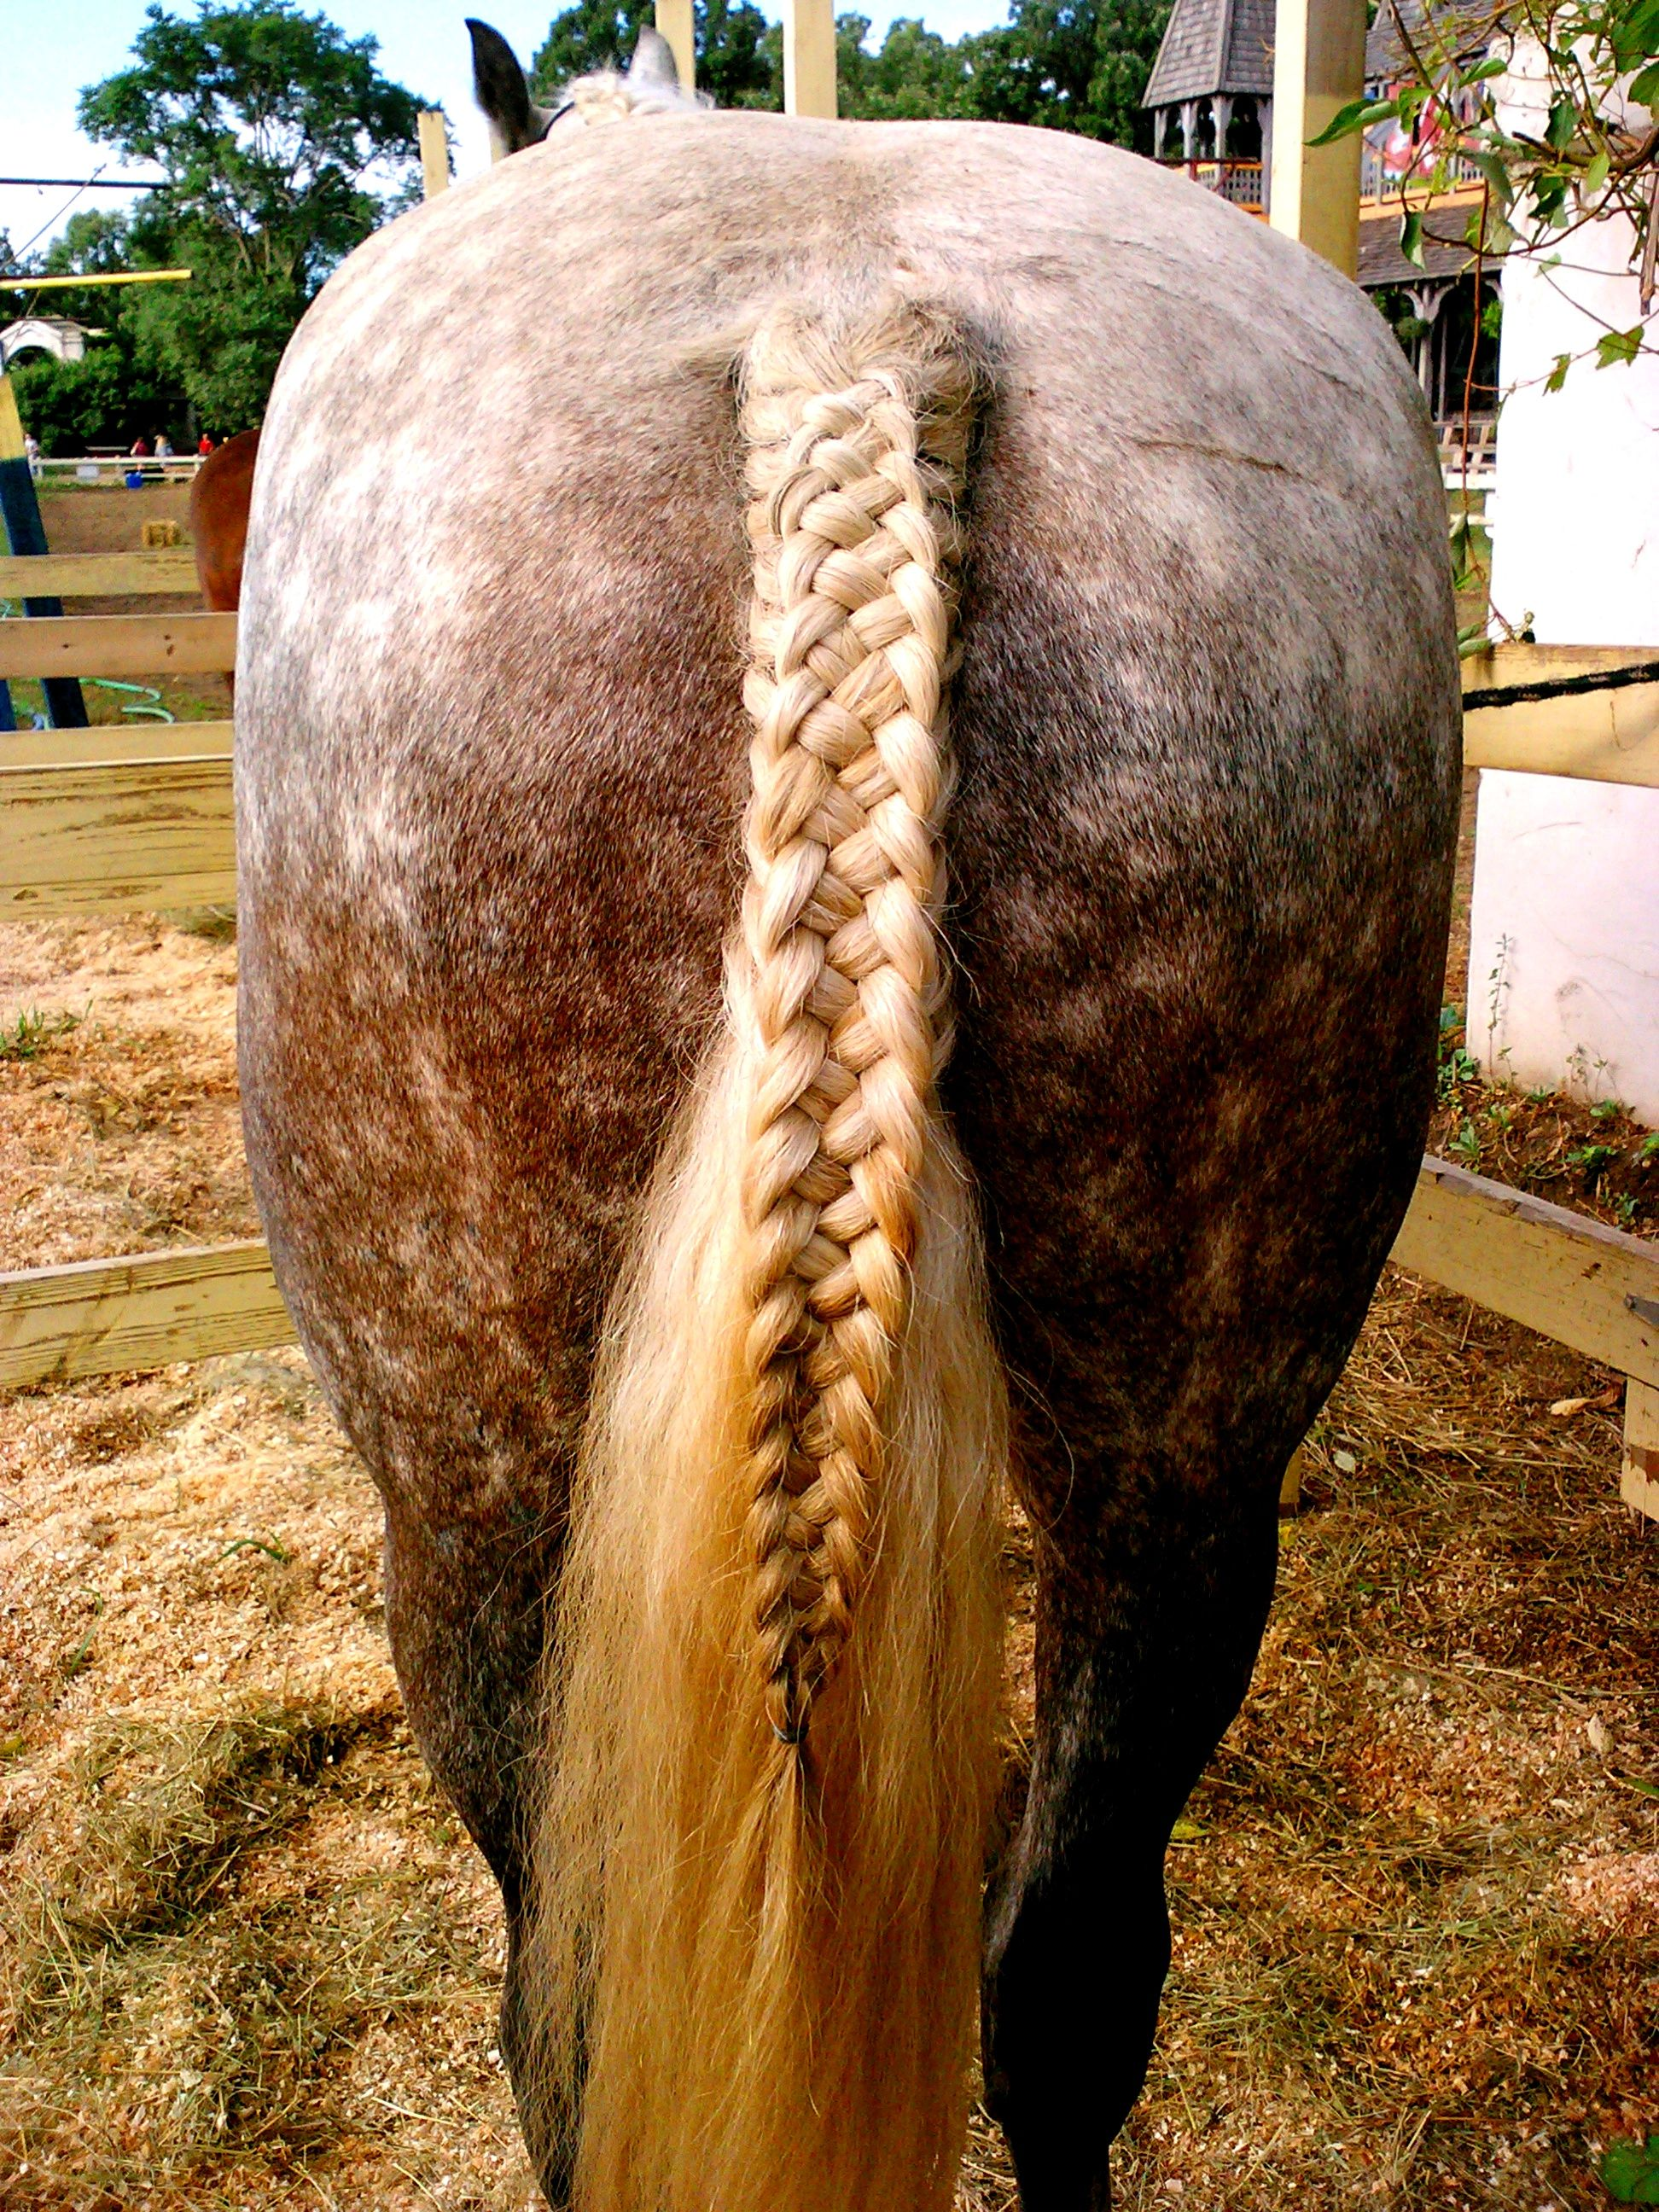 five stranded horse tail braids